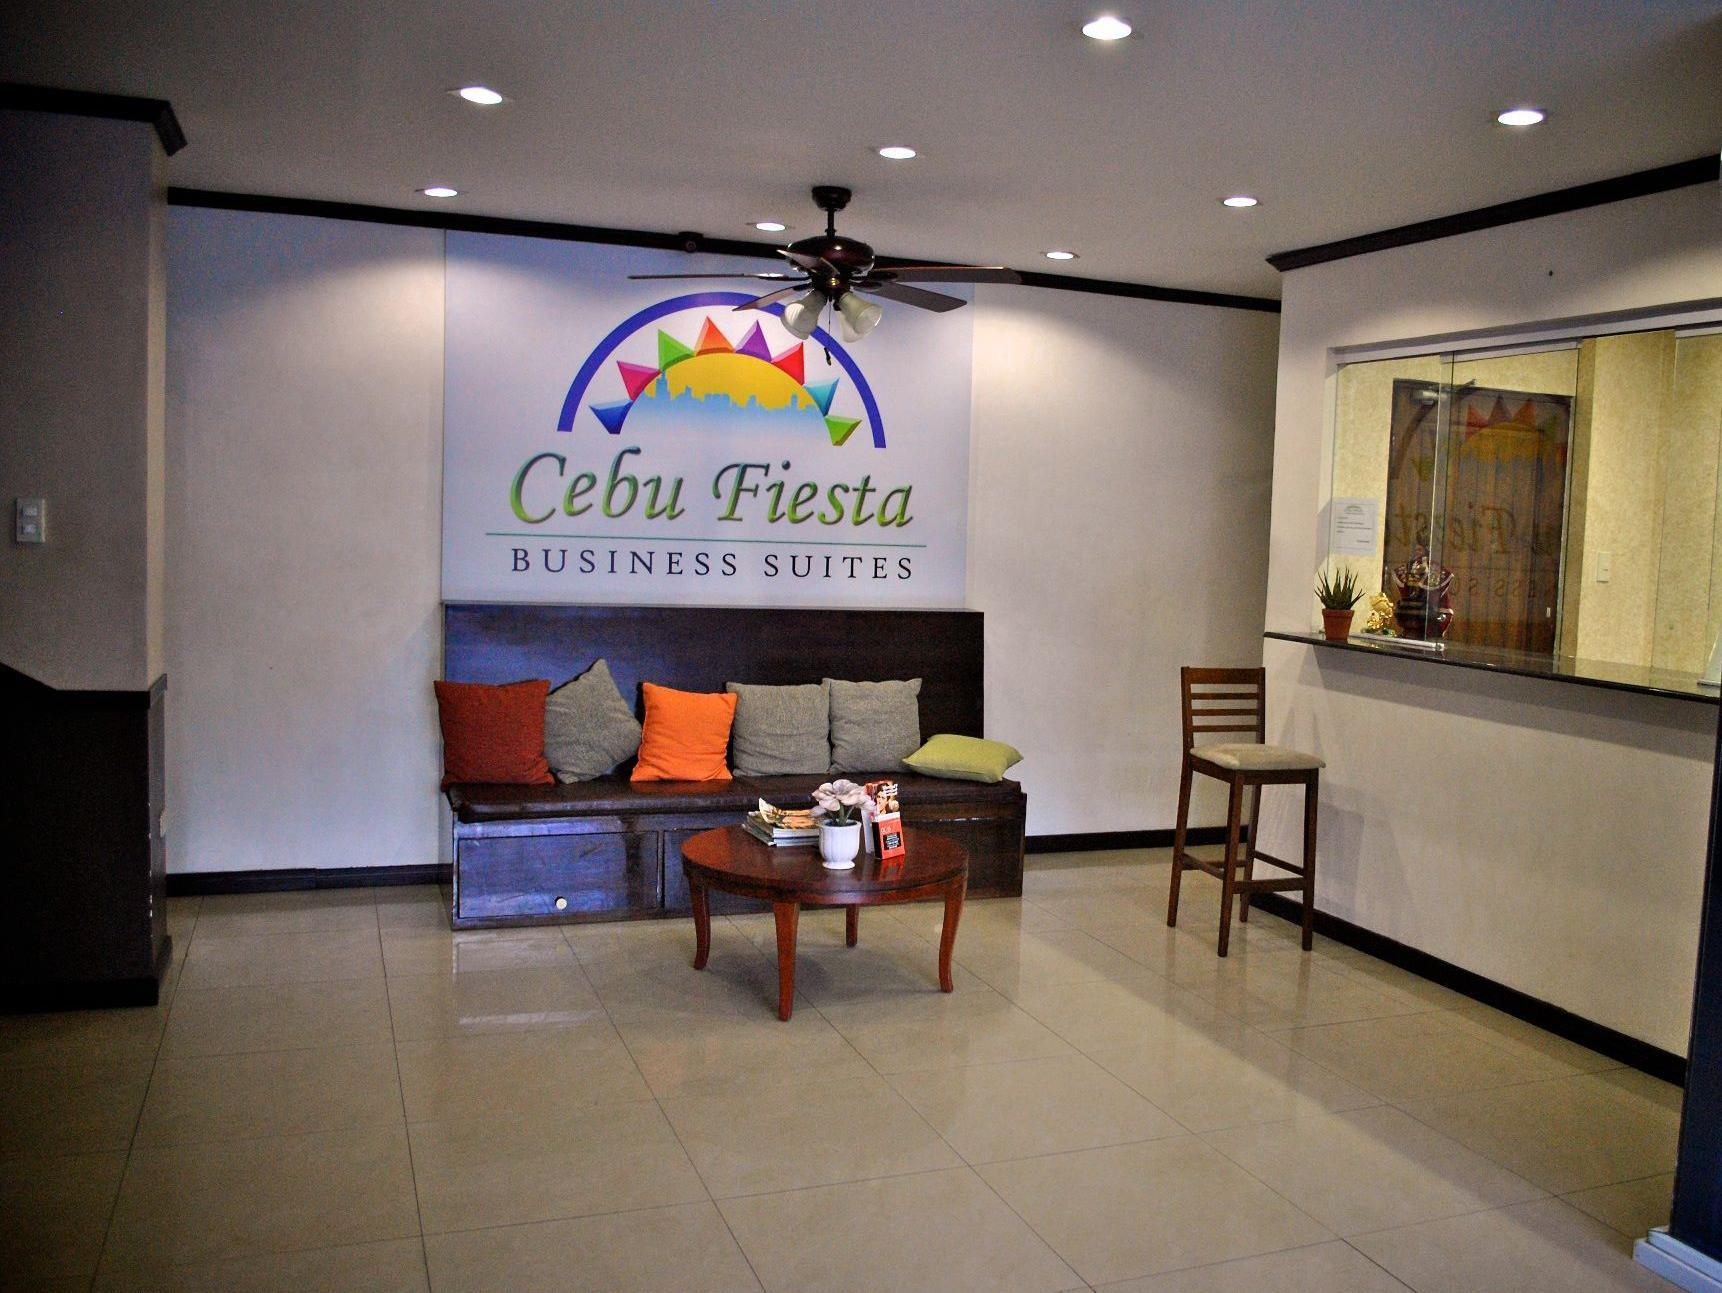 Cebu Fiesta Business Suites Себу - Фасада на хотела